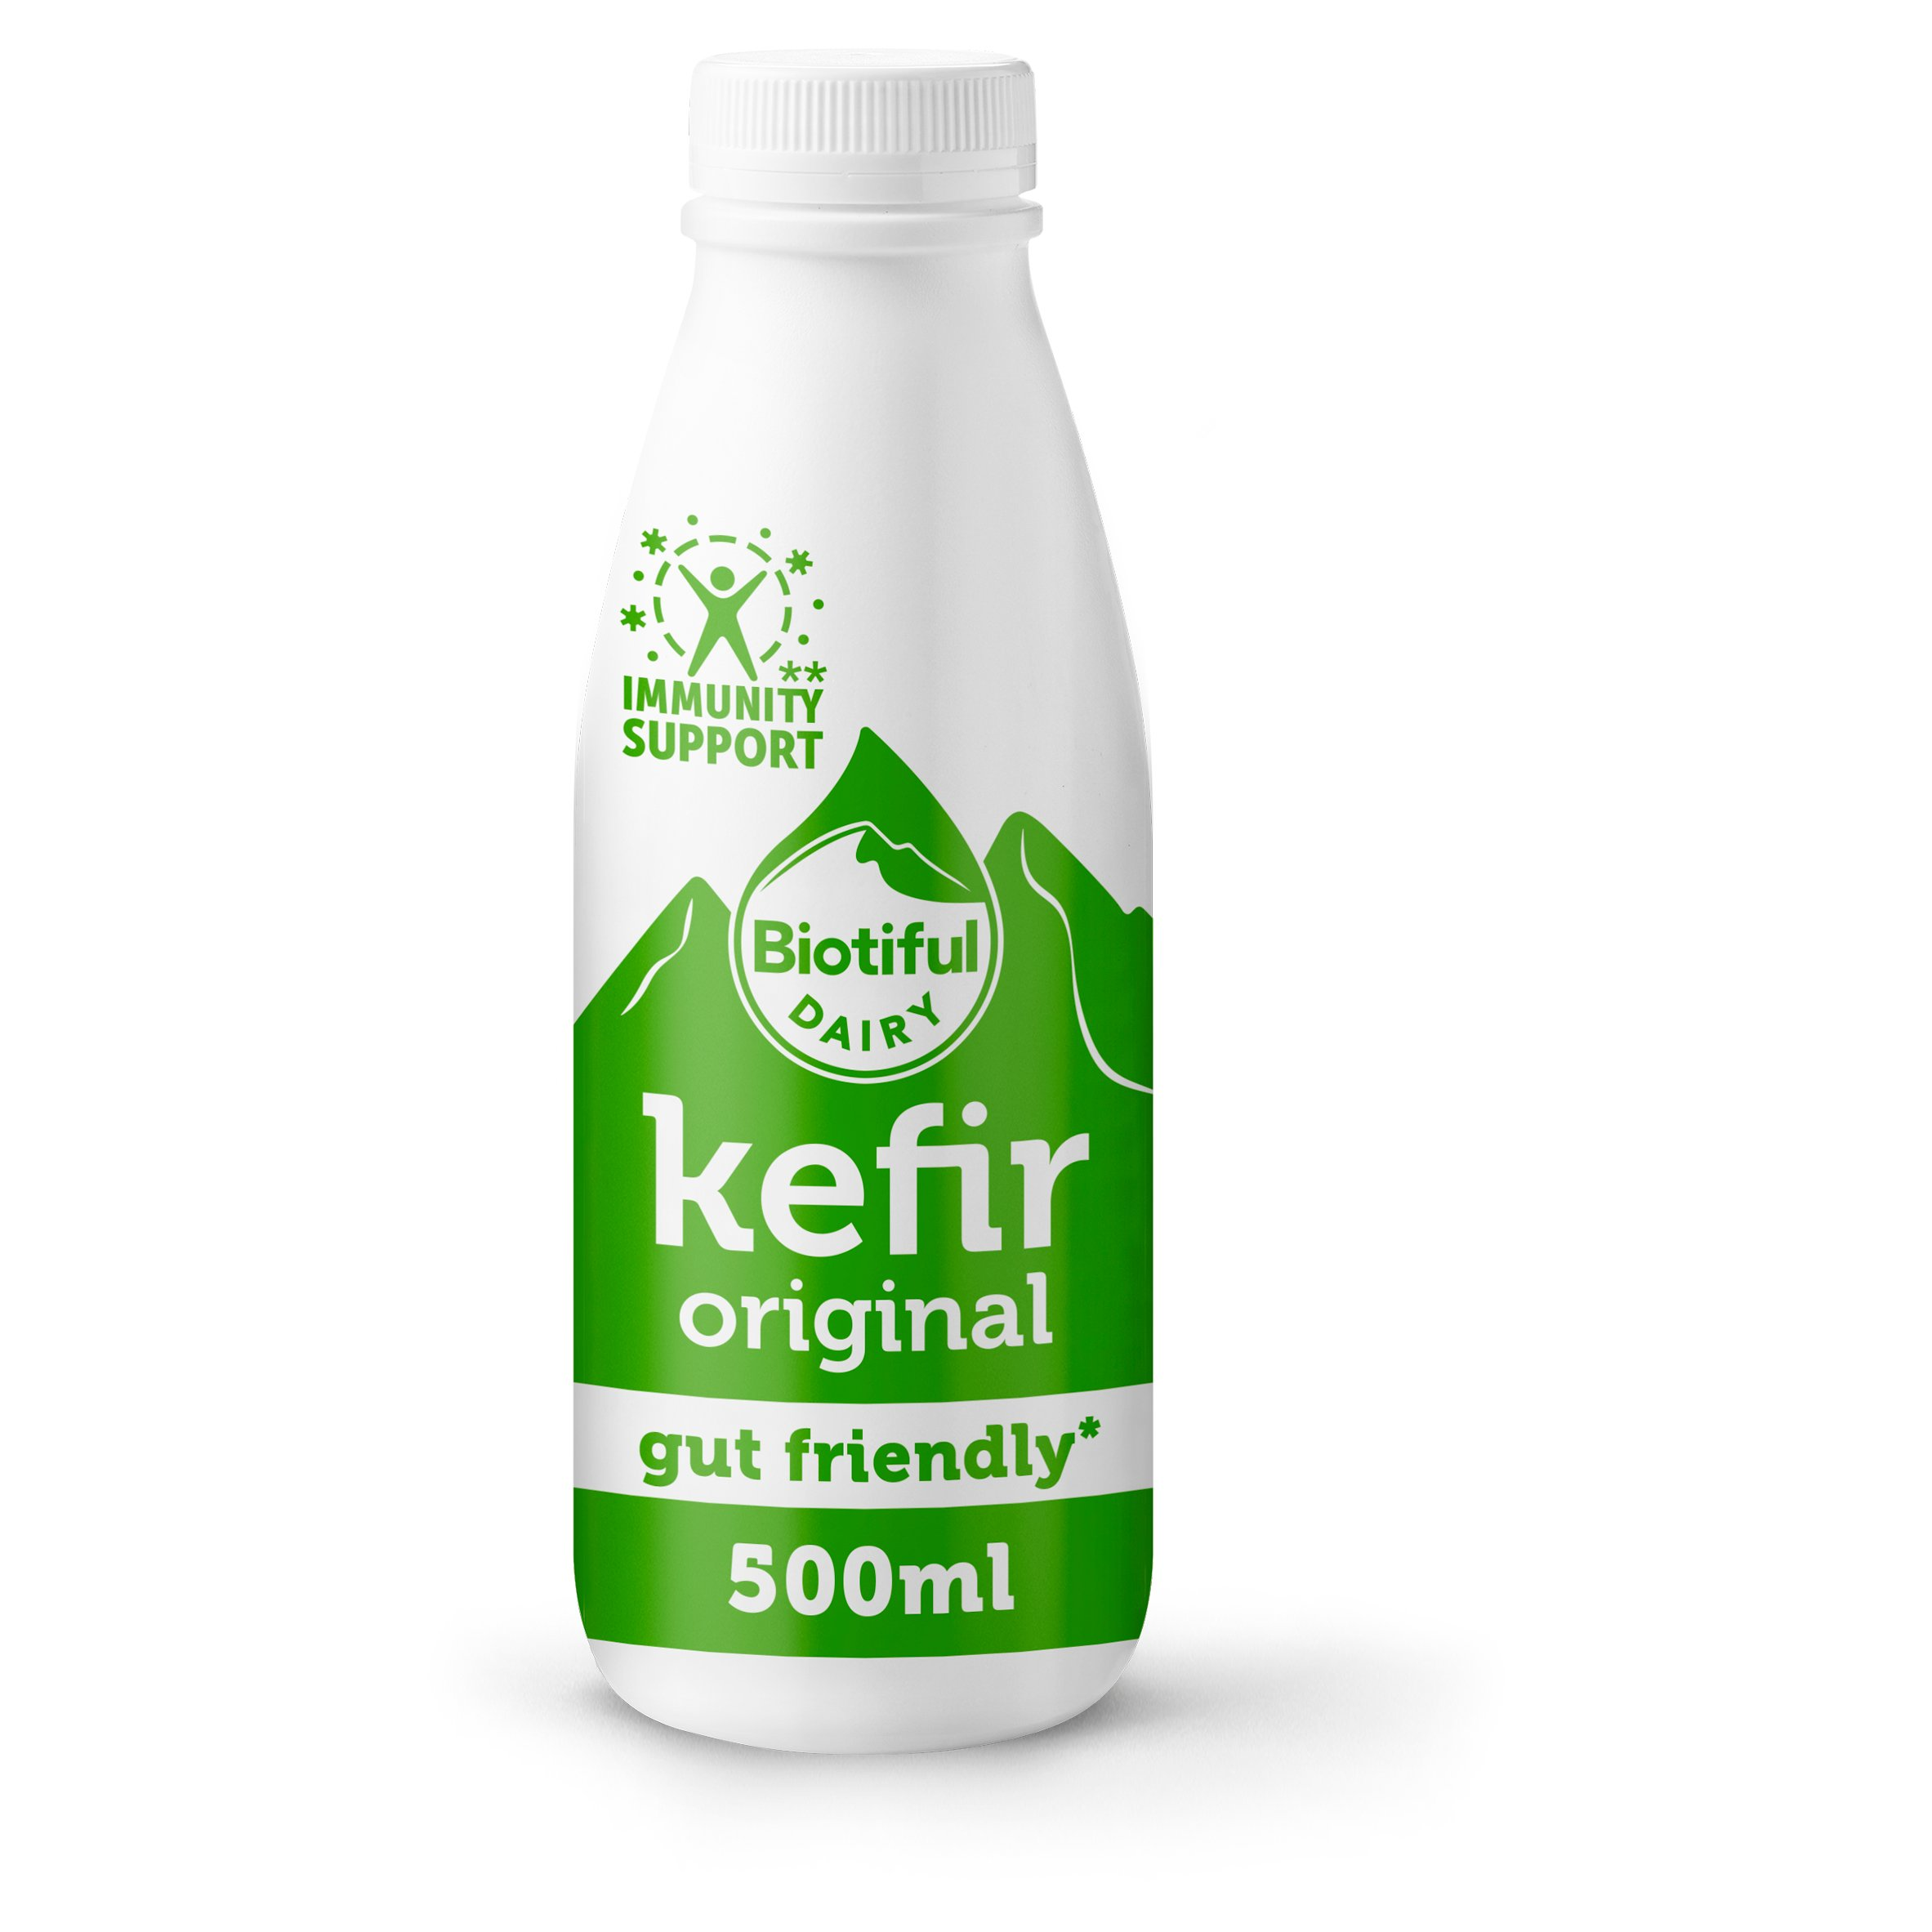 Bio-Tiful Dairy Original Kefir 500Ml